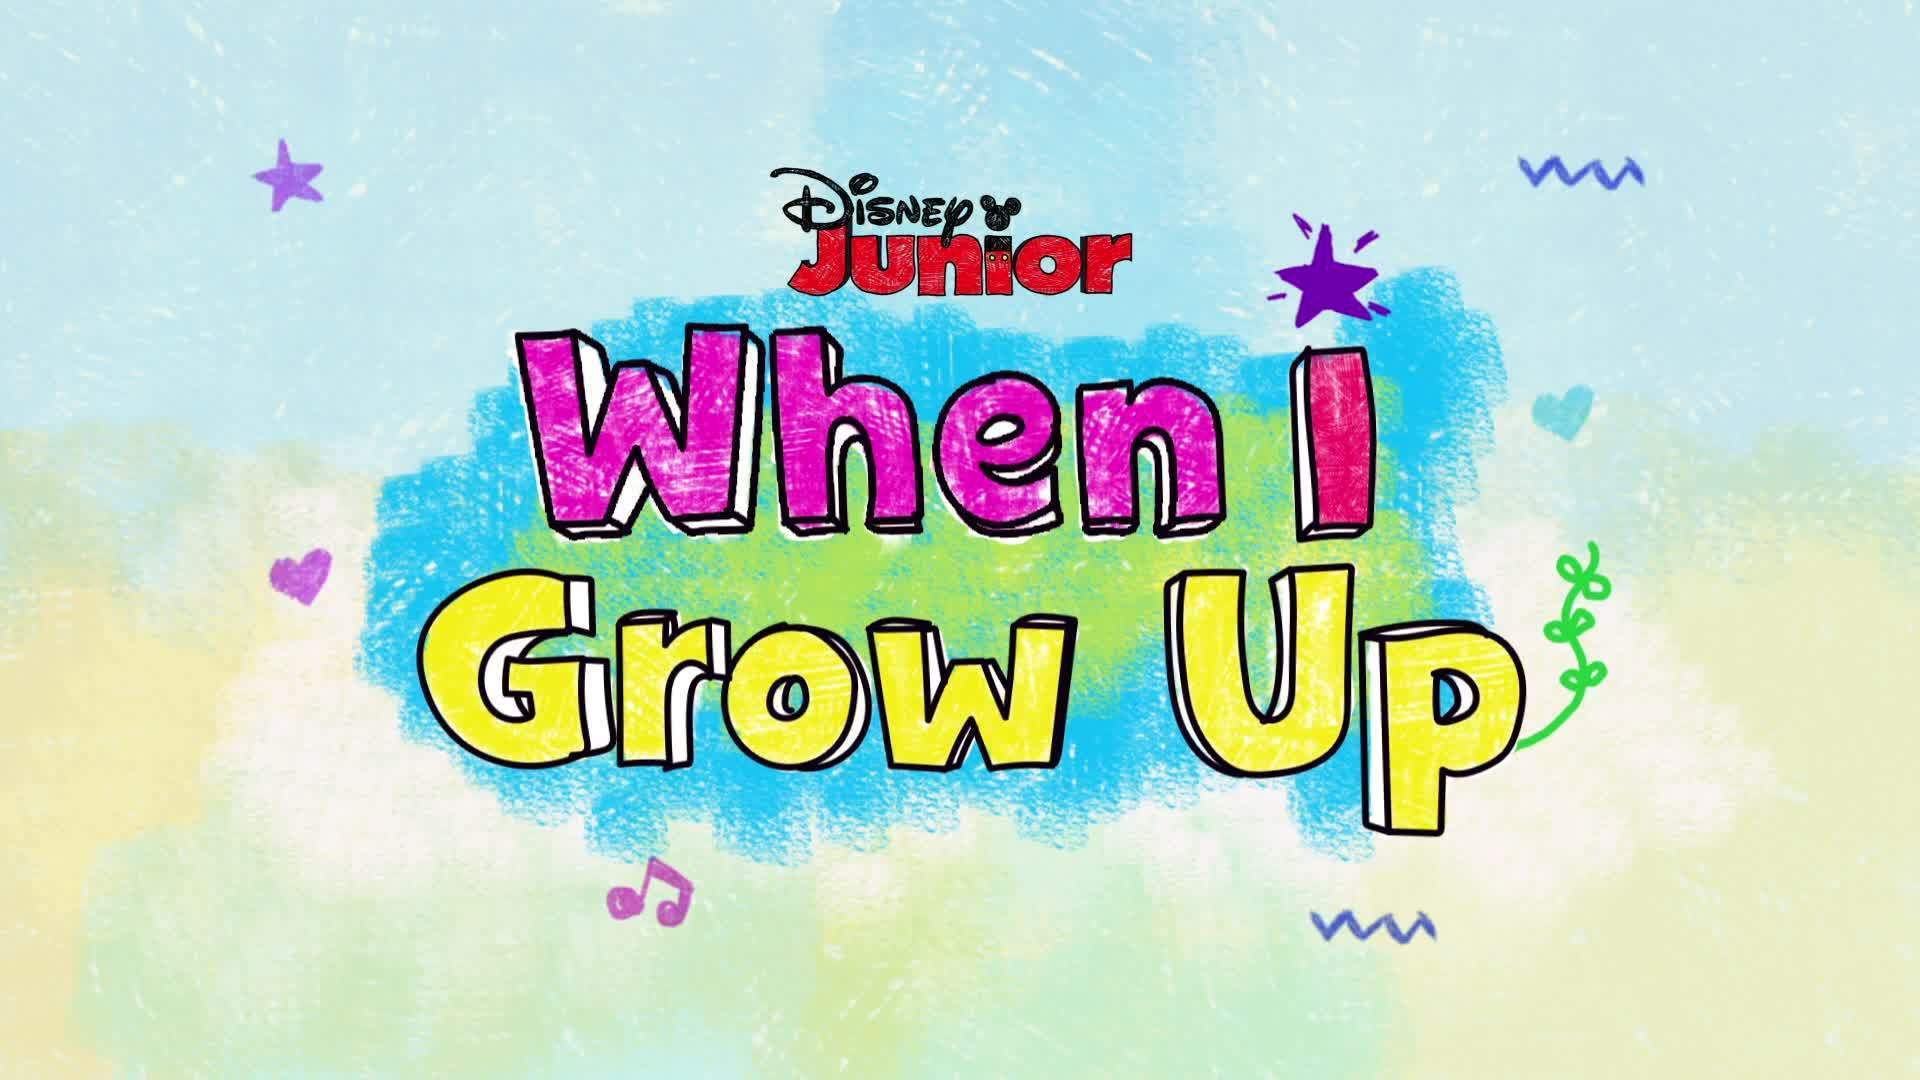 Disney Junior's When I Grow Up on AstroBest Week 5